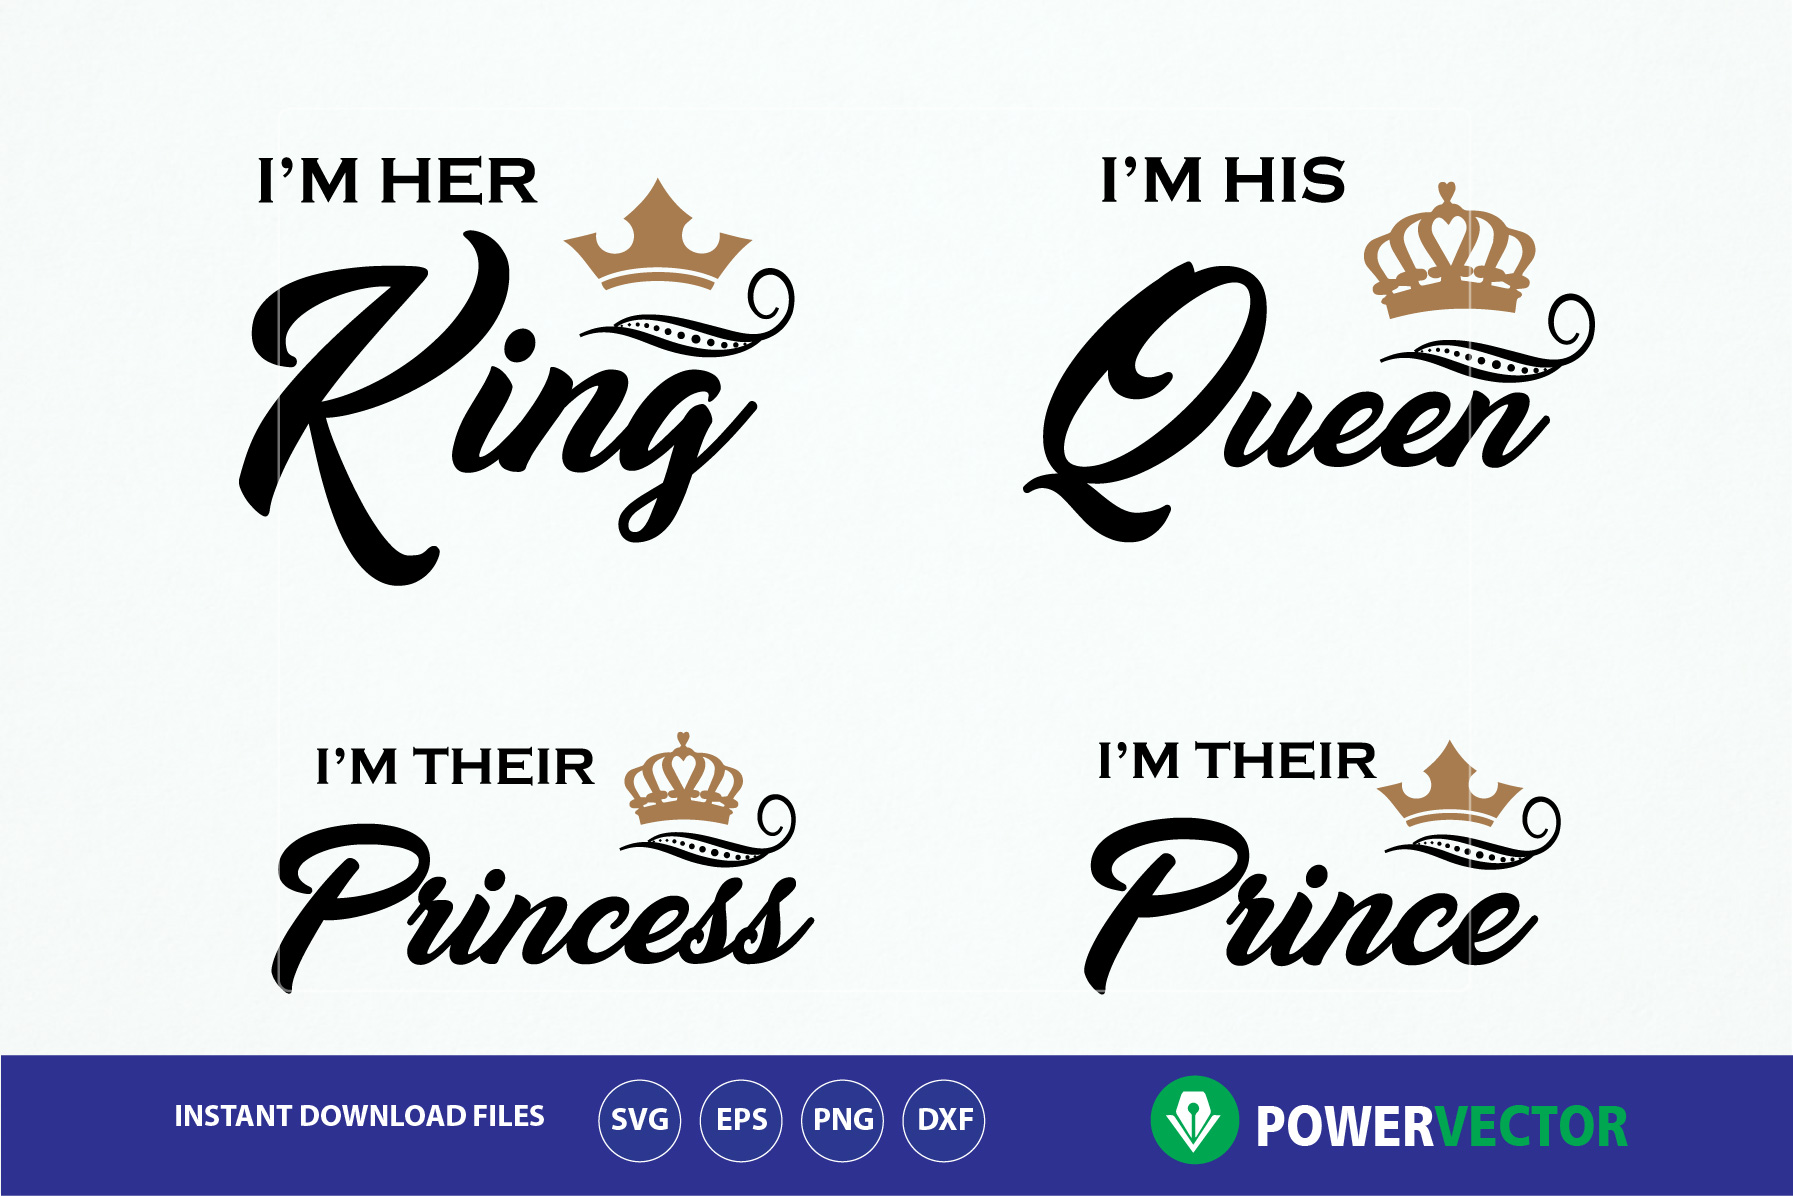 King Queen Princess Prince T Shirts Graphic By Powervector